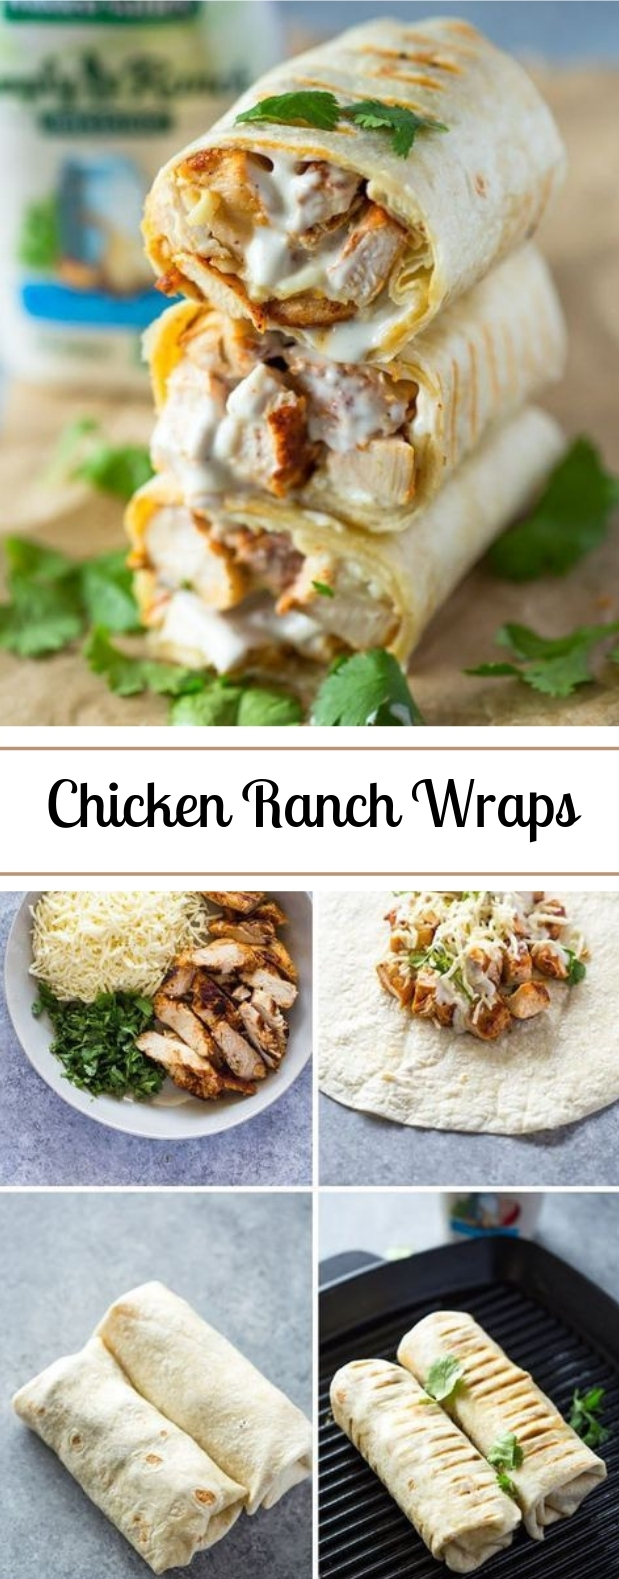 Chicken Ranch Wraps #wraps #lunch